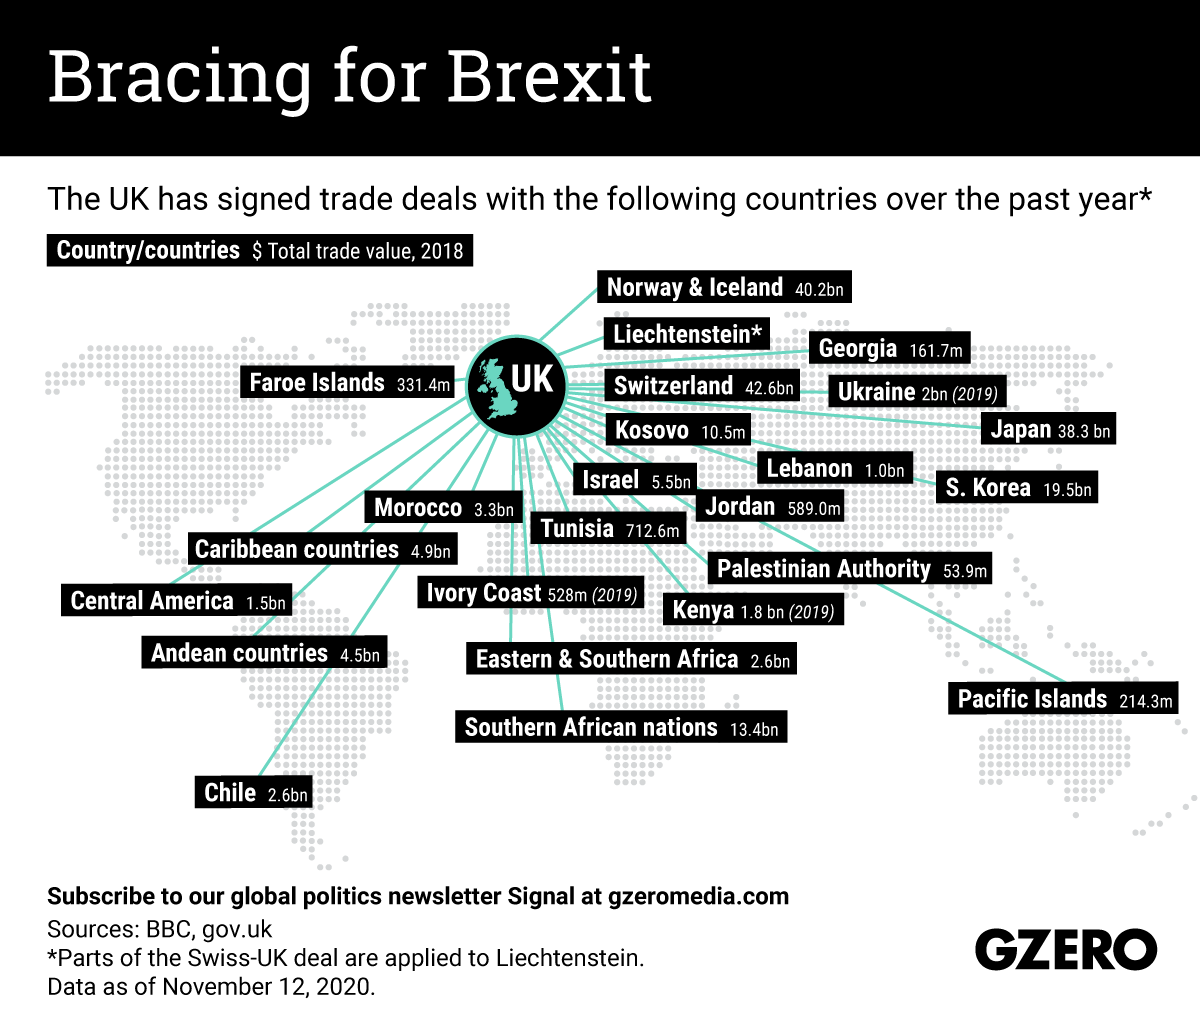 The Graphic Truth: Bracing for Brexit